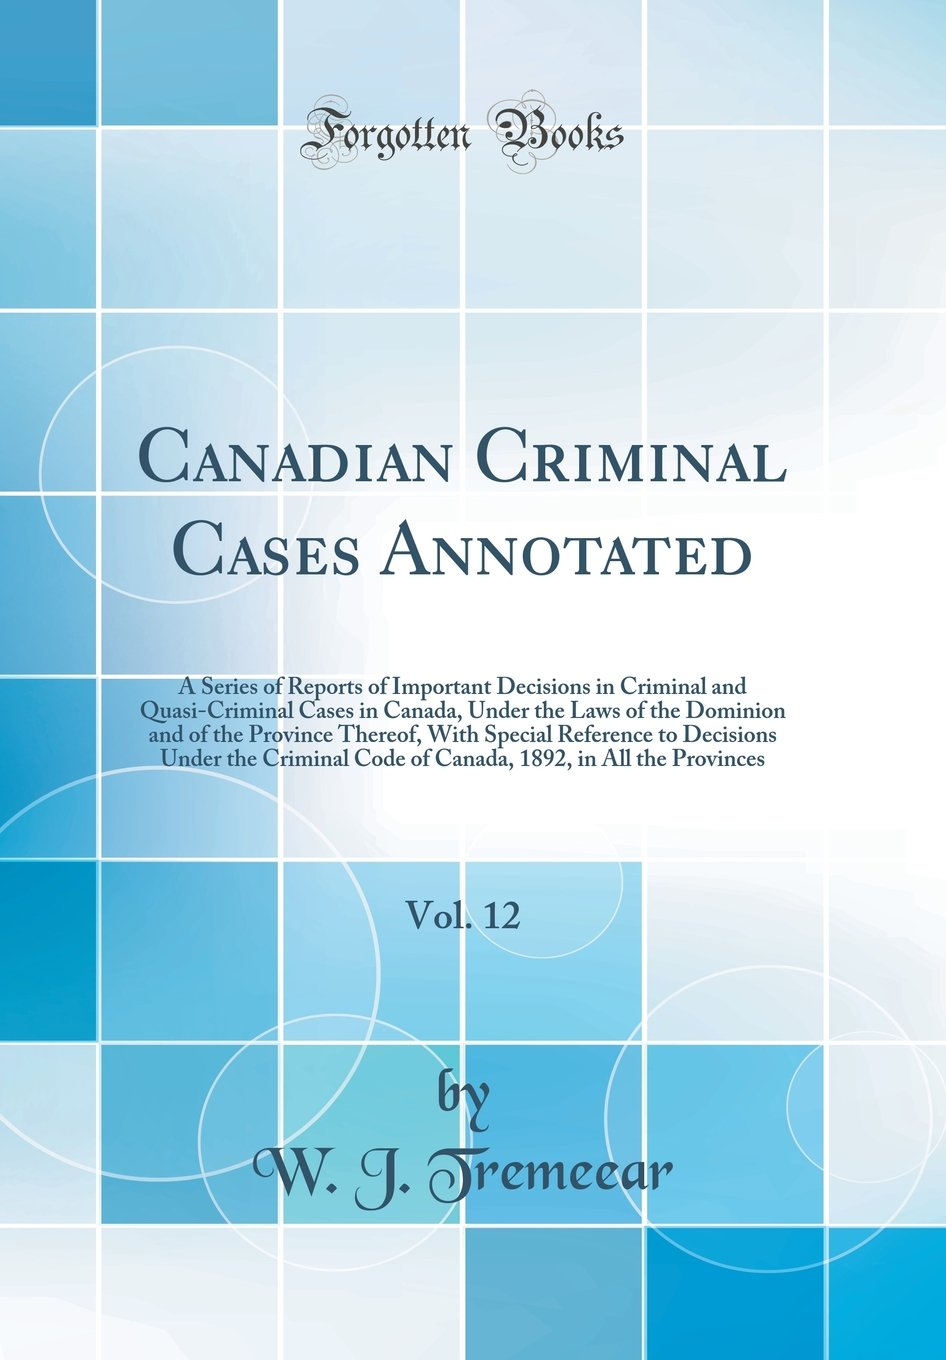 Canadian Criminal Cases Annotated, Vol. 12: A Series of Reports of Important Decisions in Criminal and Quasi-Criminal Cases in Canada, Under the Laws ... to Decisions Under the Criminal Code Text fb2 ebook